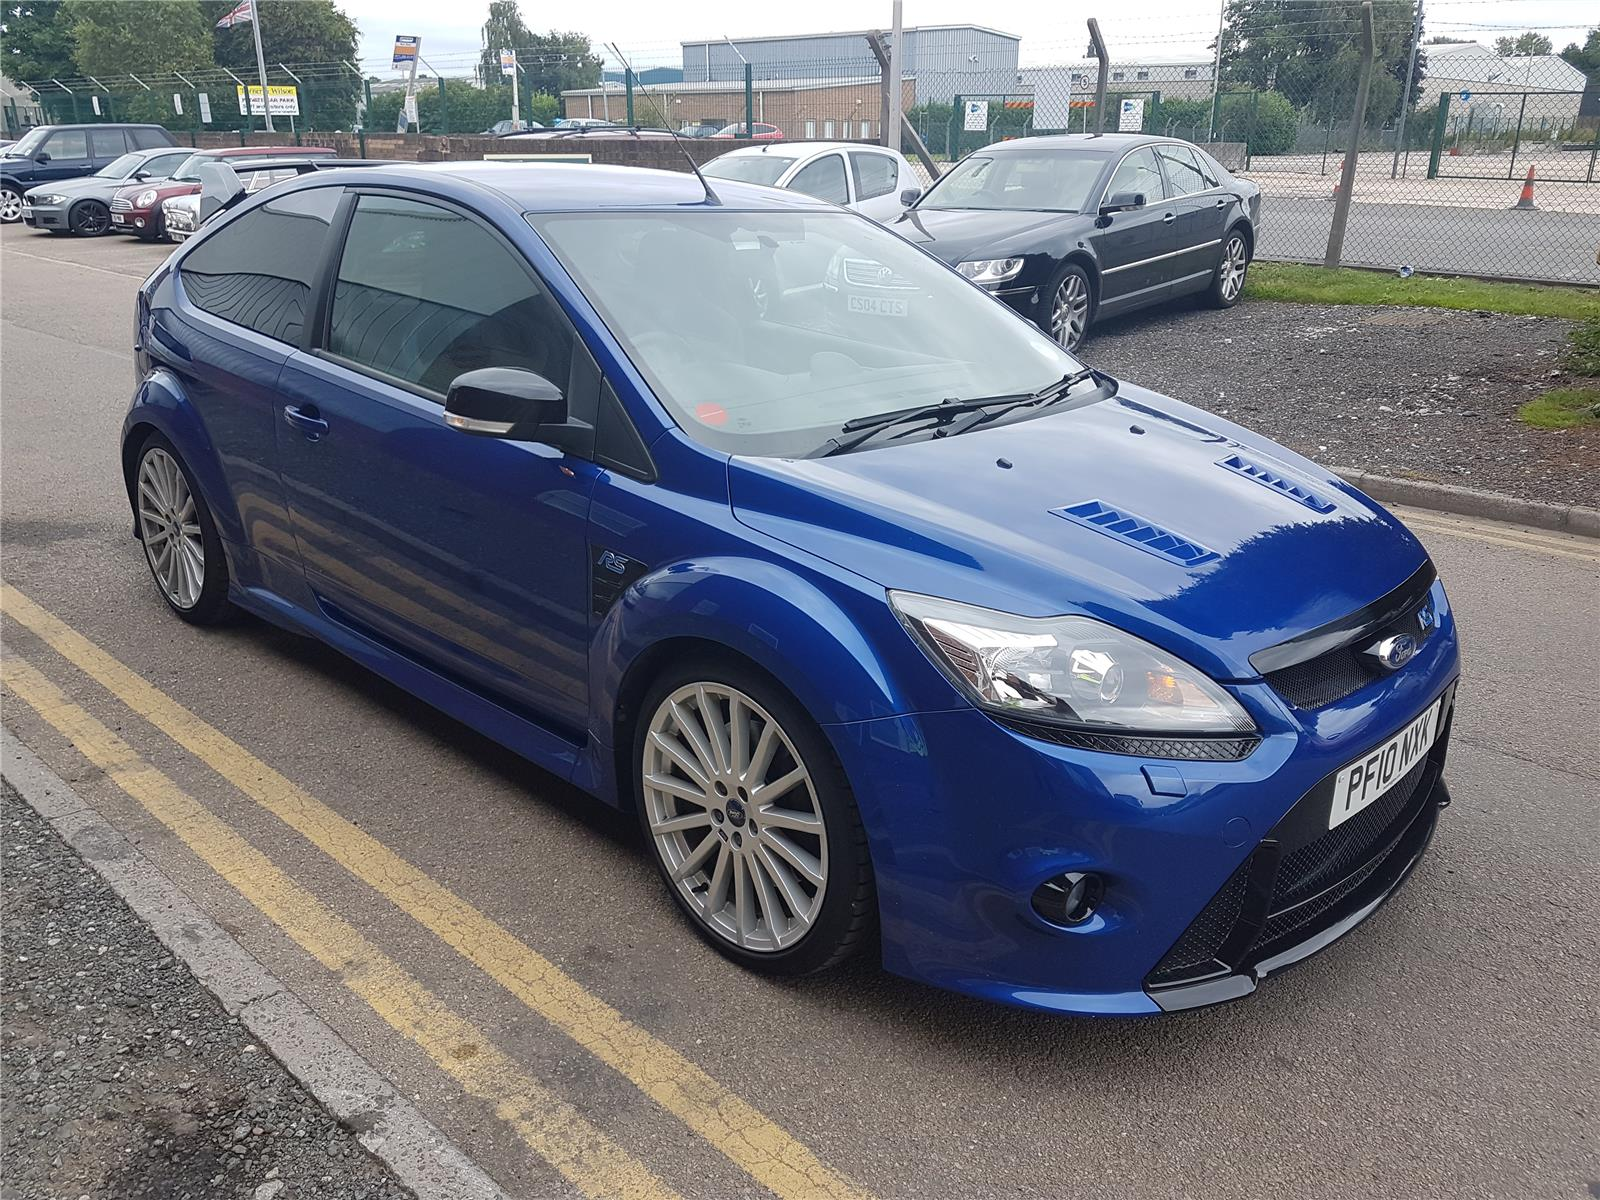 2010 FORD FOCUS MK2 FL (C307) 2004 TO 2011 3 DOOR HATCHBACK